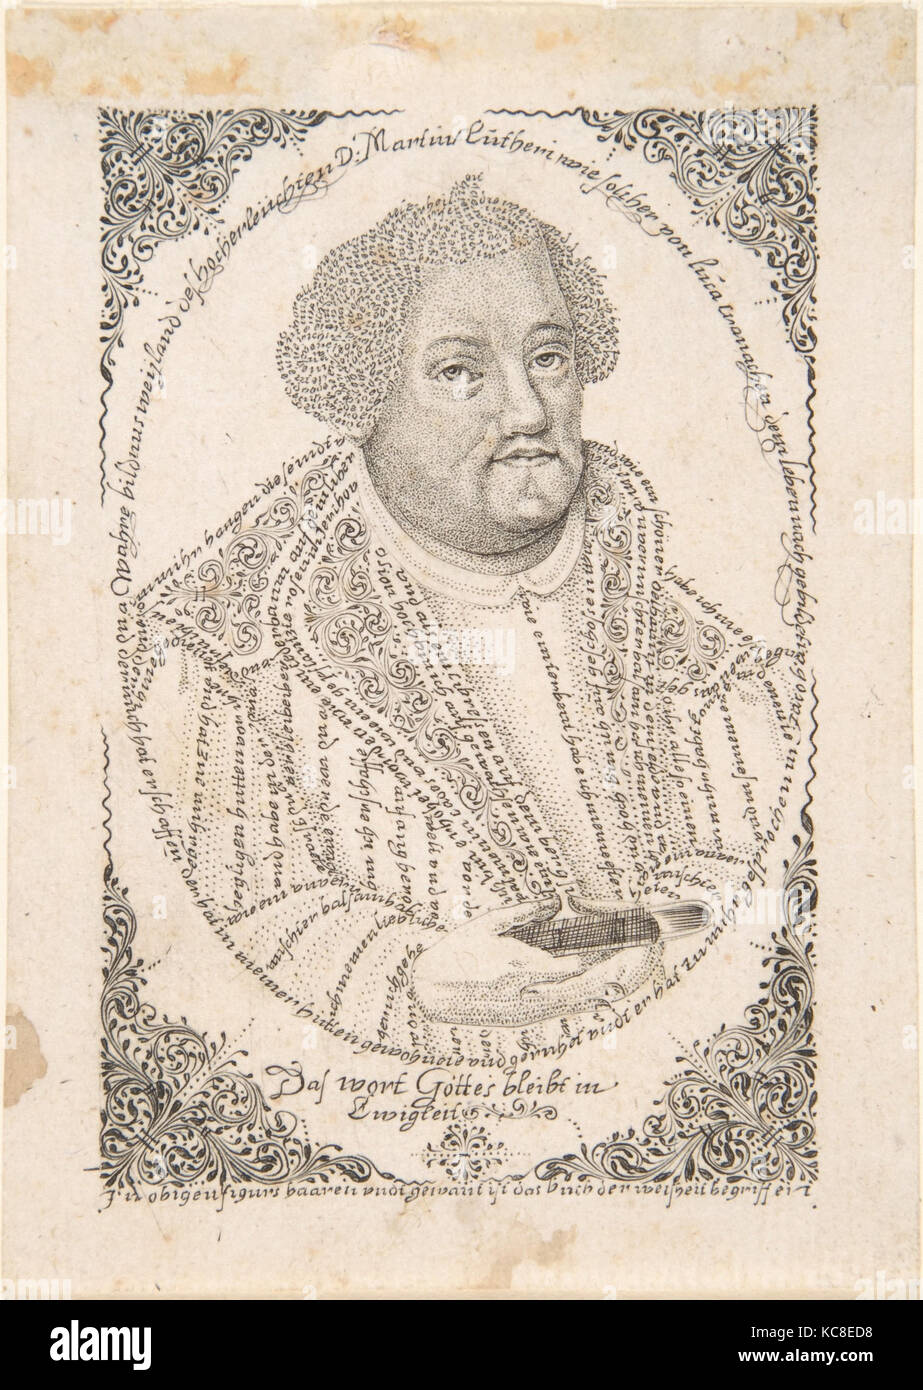 Portrait of Martin Luther, Johann Michael Püchler, late 17th–18th century - Stock Image